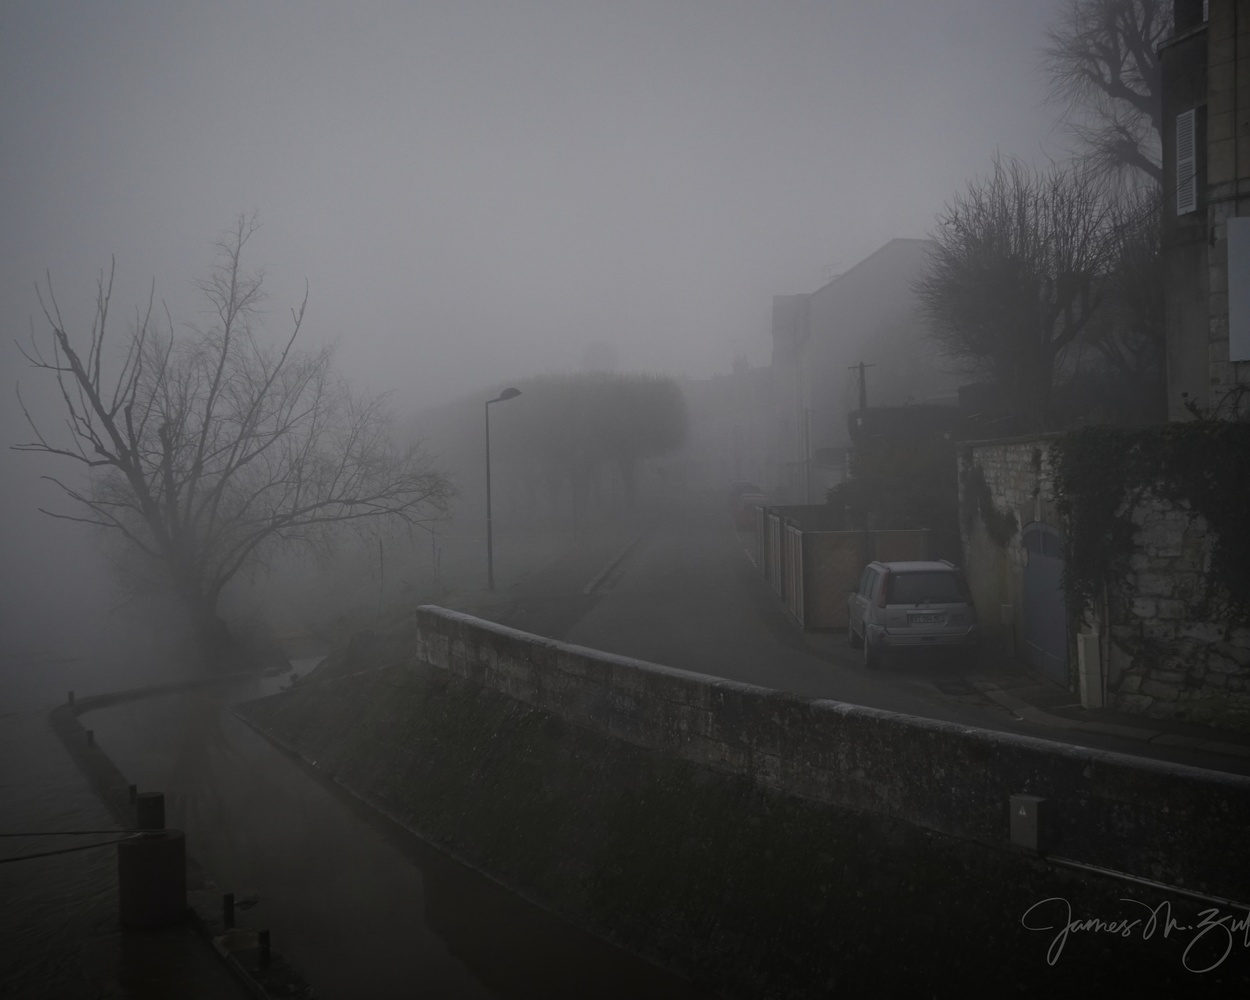 Foggy France by James Zuffoletto